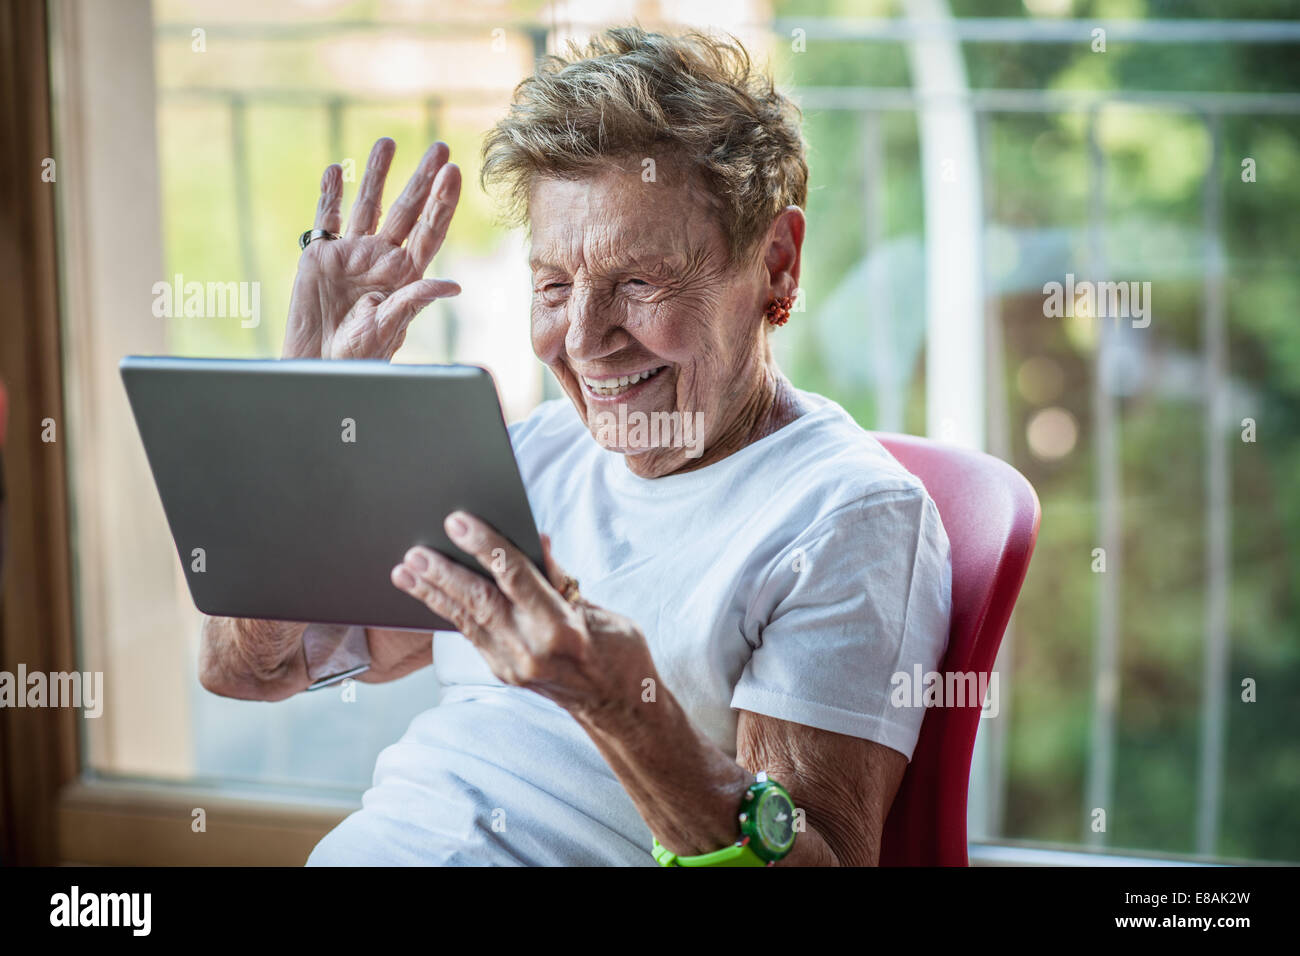 A very senior woman using digital tablet on apartment balcony - Stock Image